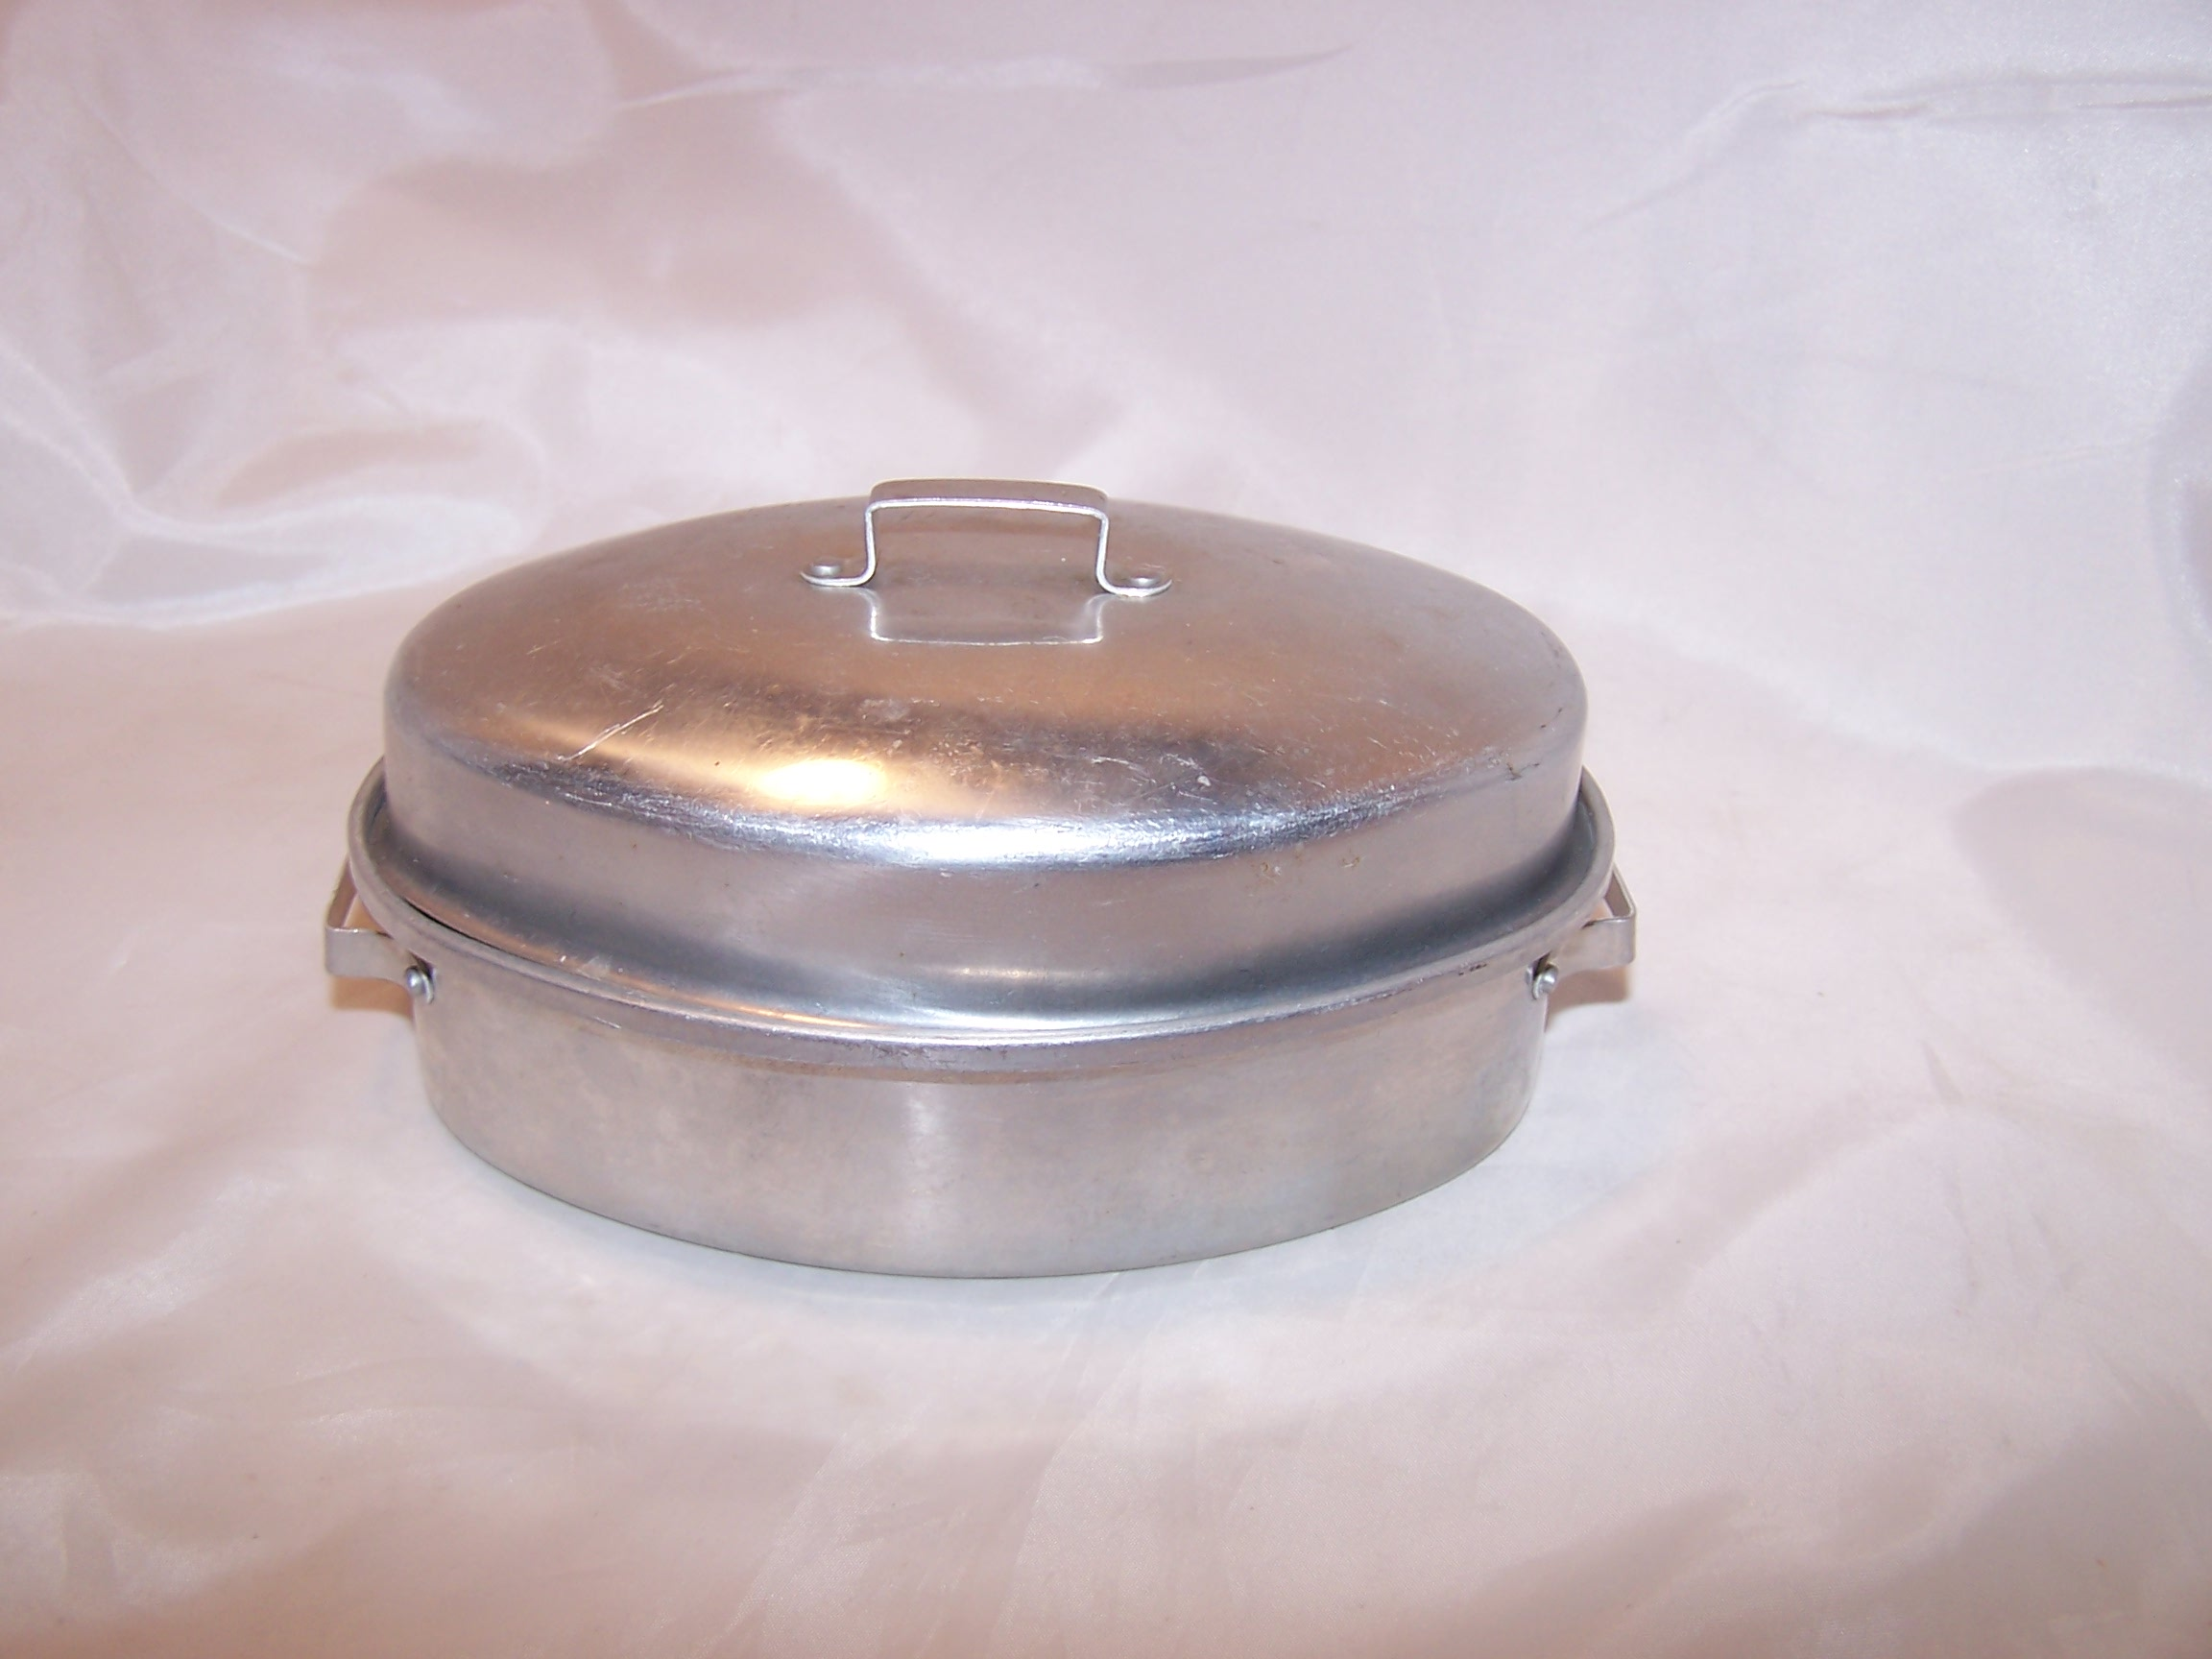 Image 2 of Toy Roaster w Lid, Aluminum, Vintage Childs Toy